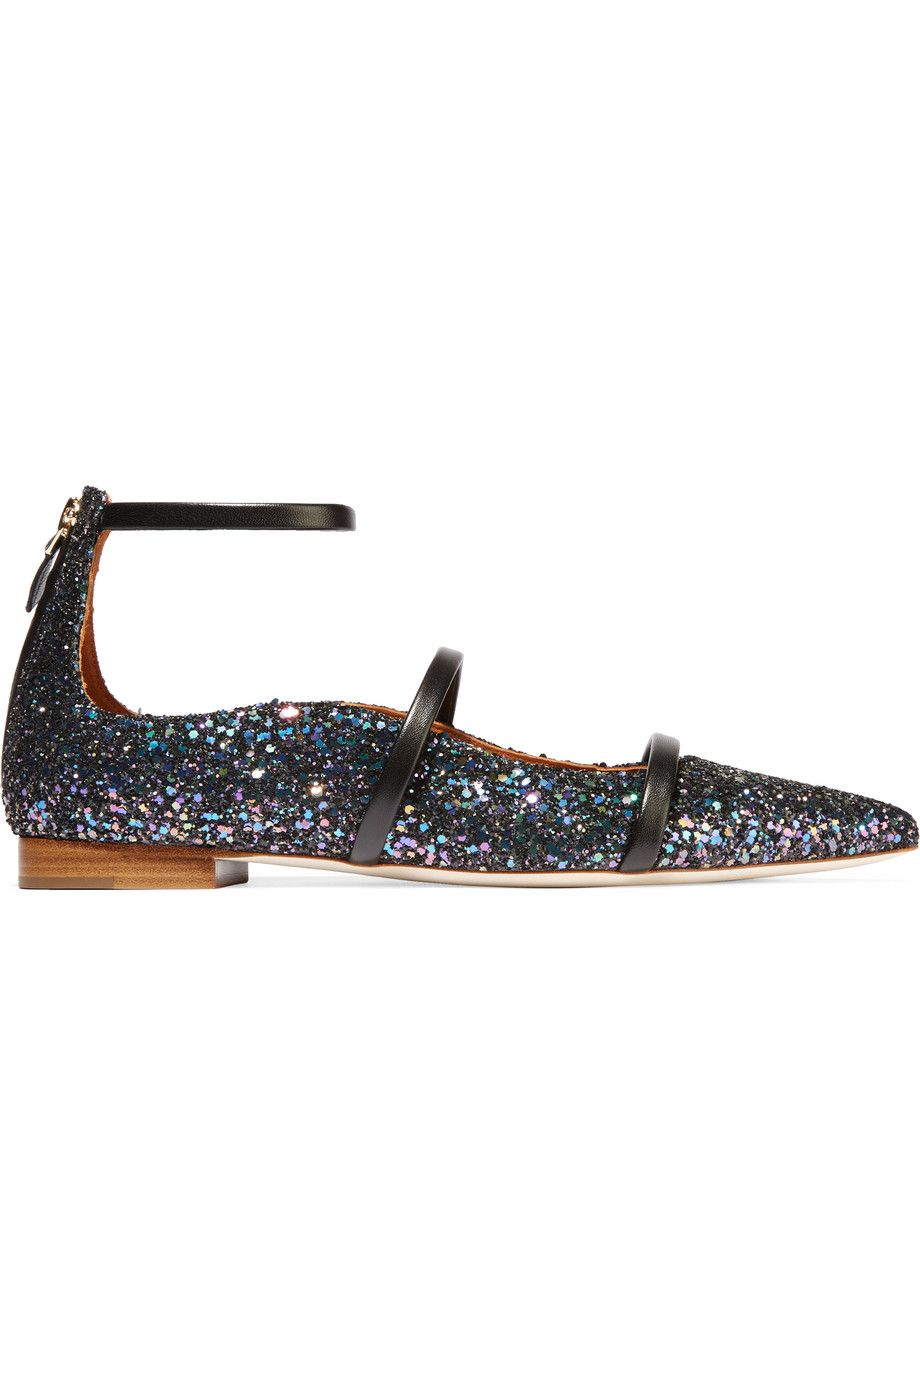 Find this Pin and more on Malone Souliers. Shop on-sale Malone Souliers  Glittered leather point-toe flats. Browse other discount designer Flat Shoes  ...